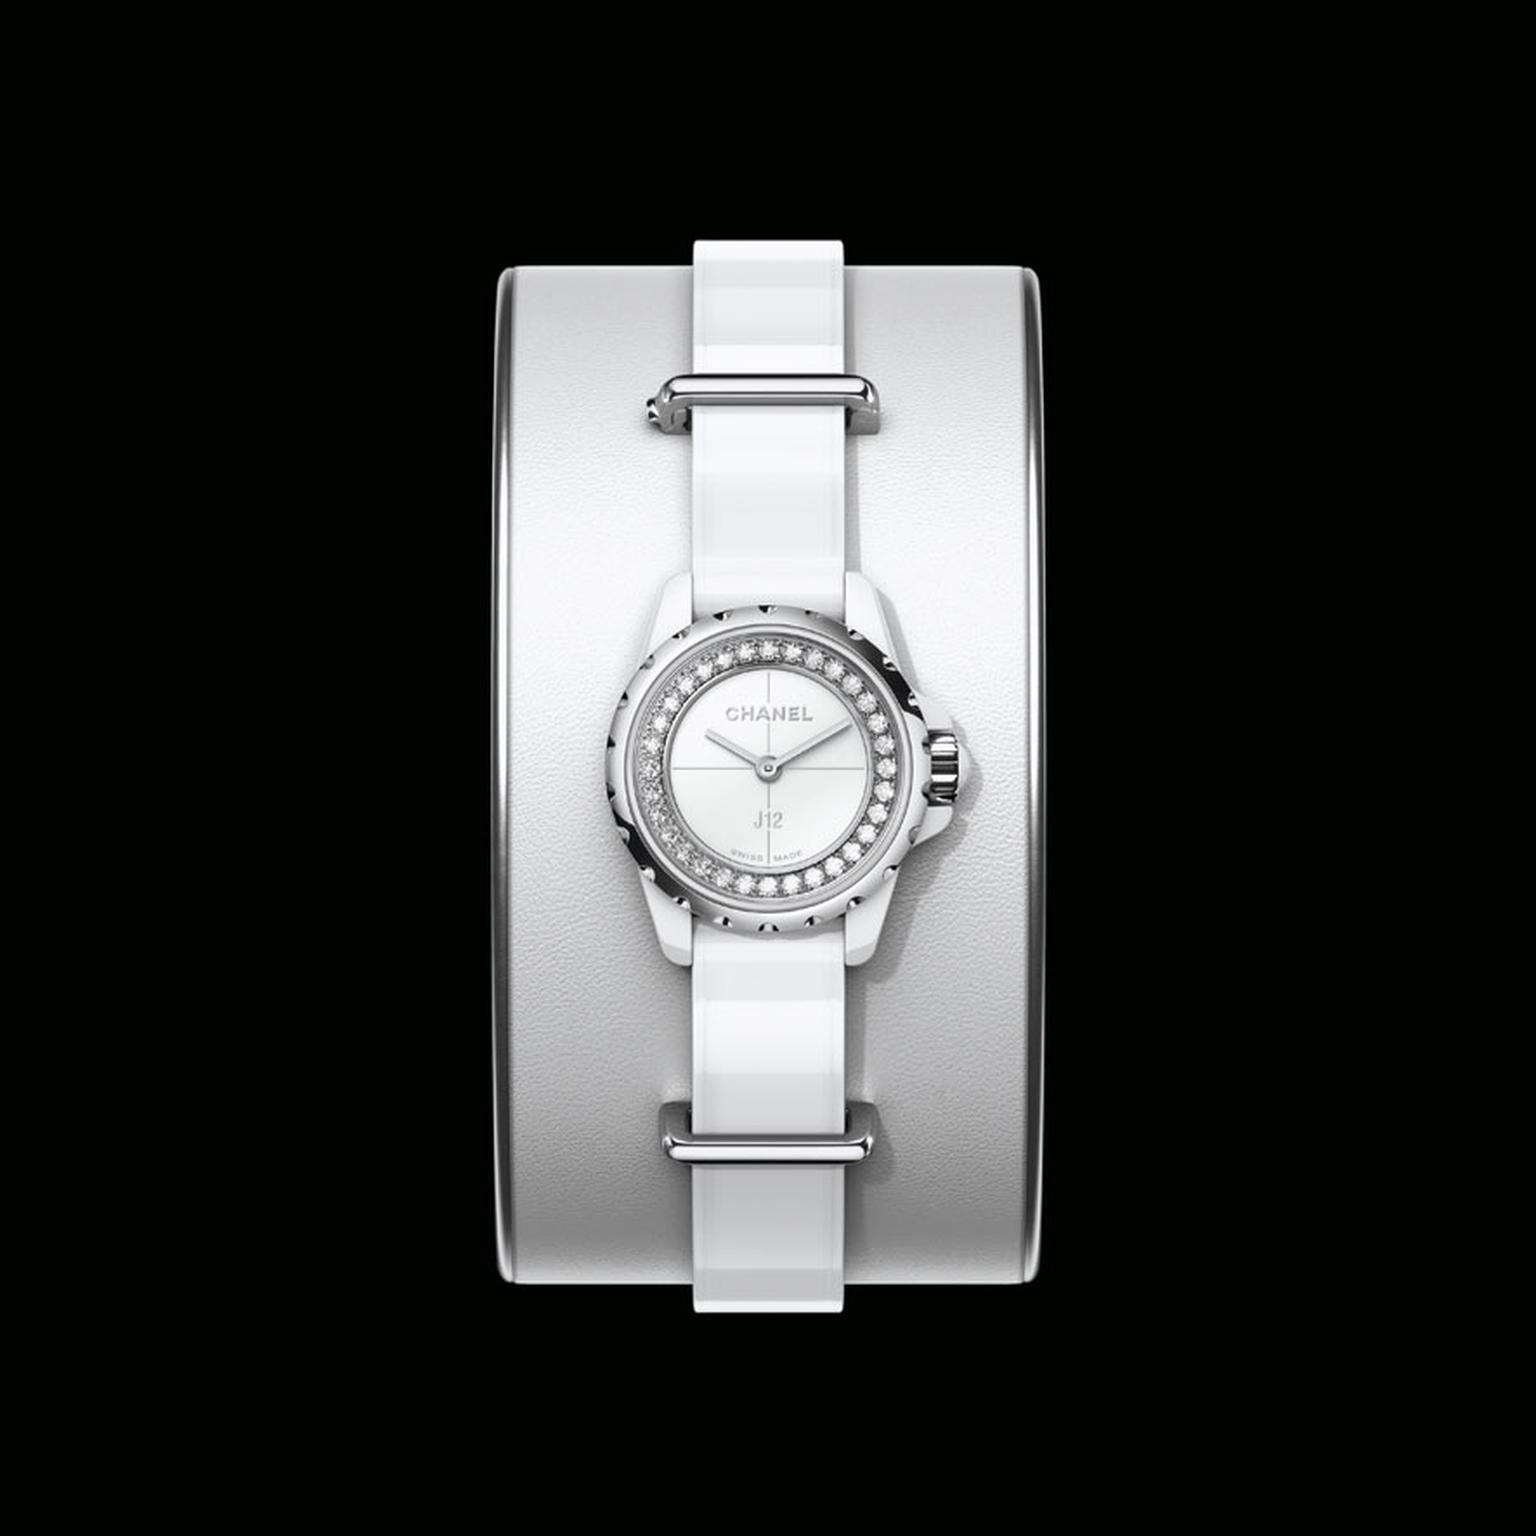 Chanel J12 XS small cuff watch in white